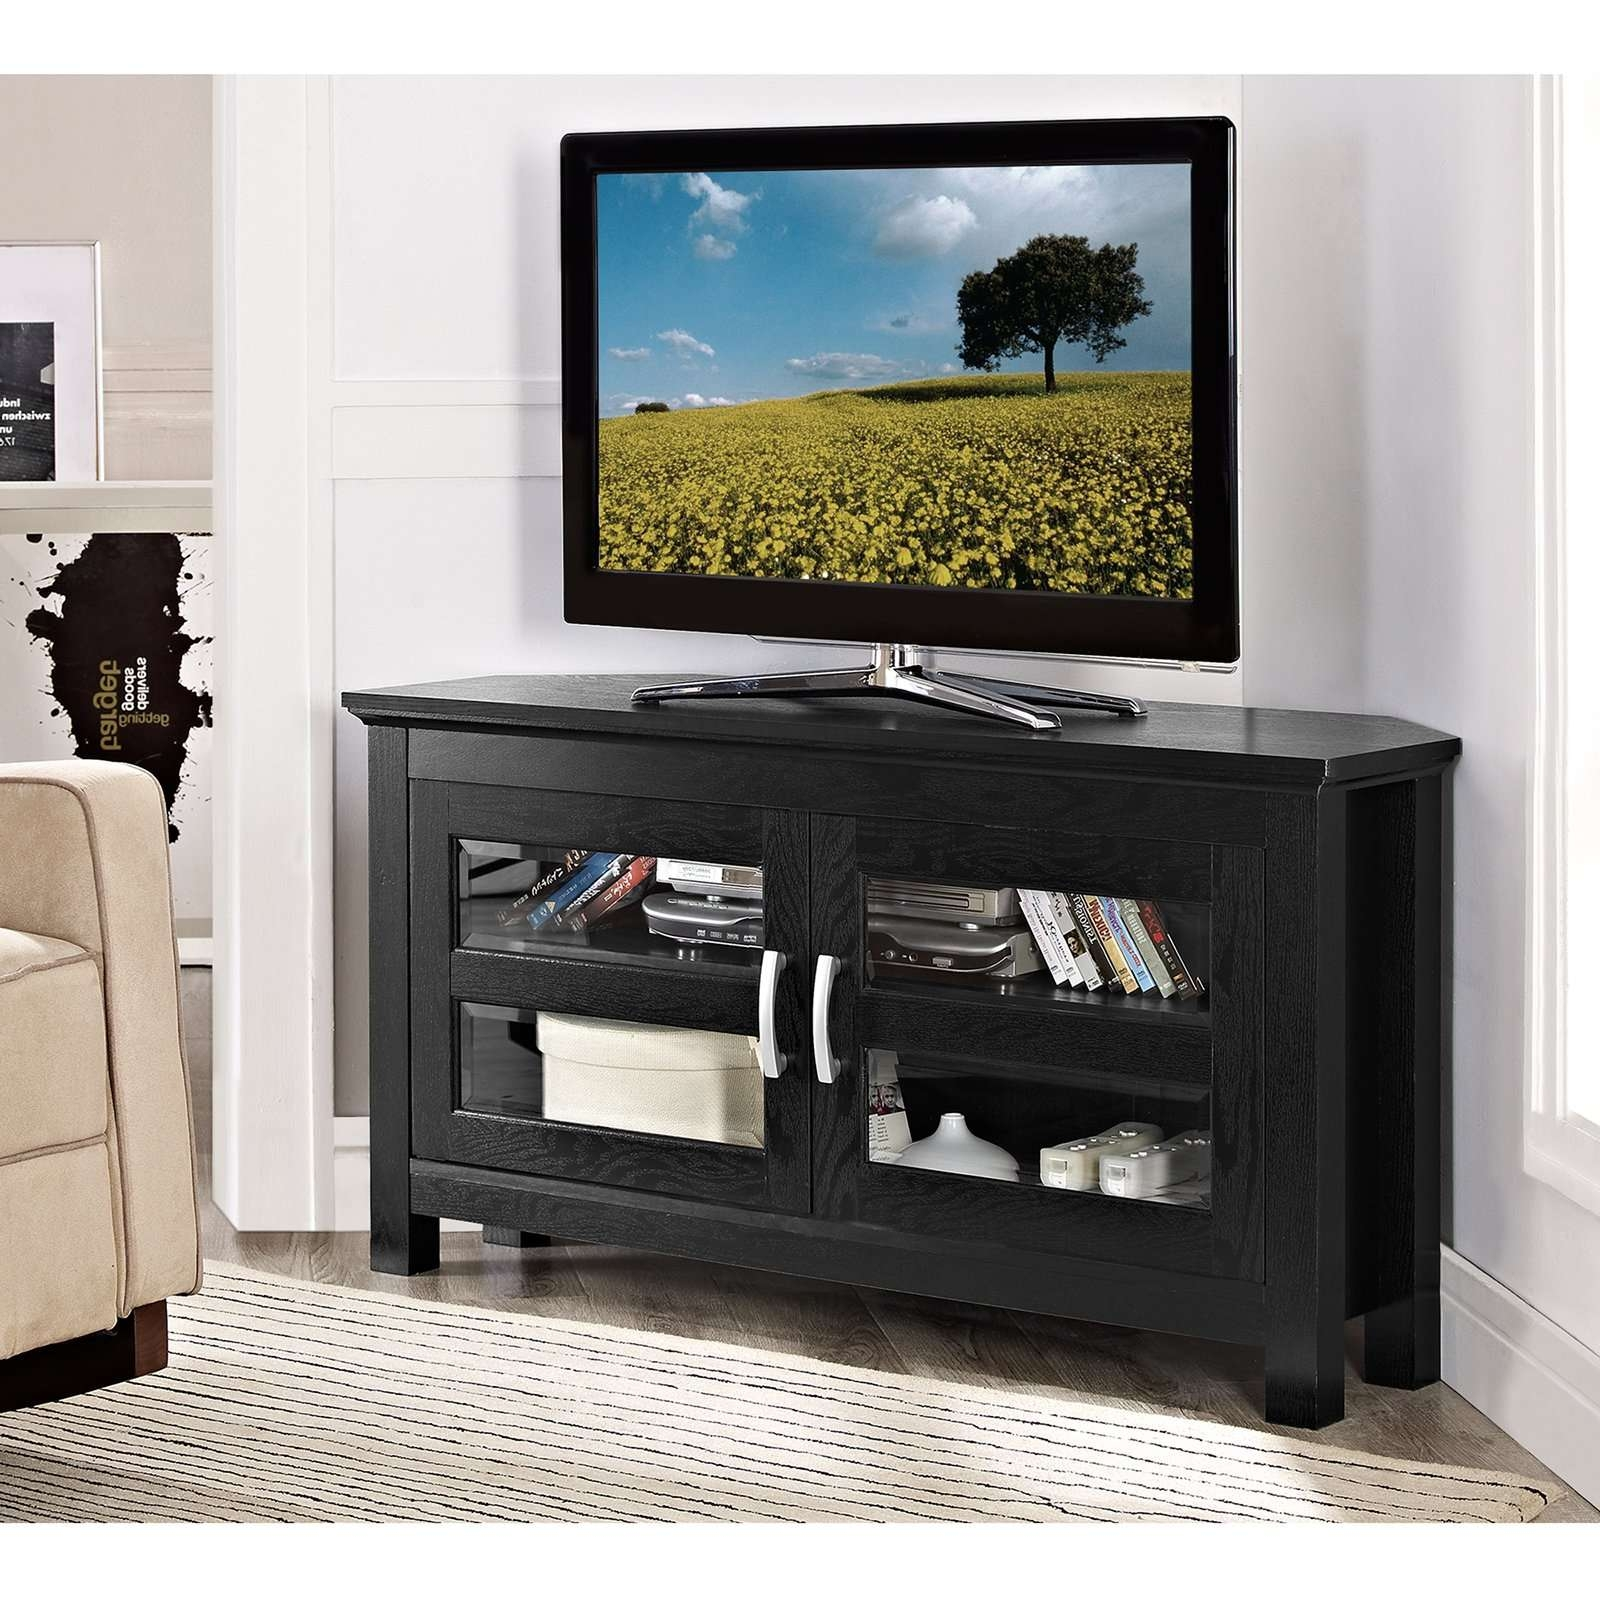 Compton Black Corner Tv Stand | Hayneedle Pertaining To Black Corner Tv Cabinets With Glass Doors (View 4 of 20)